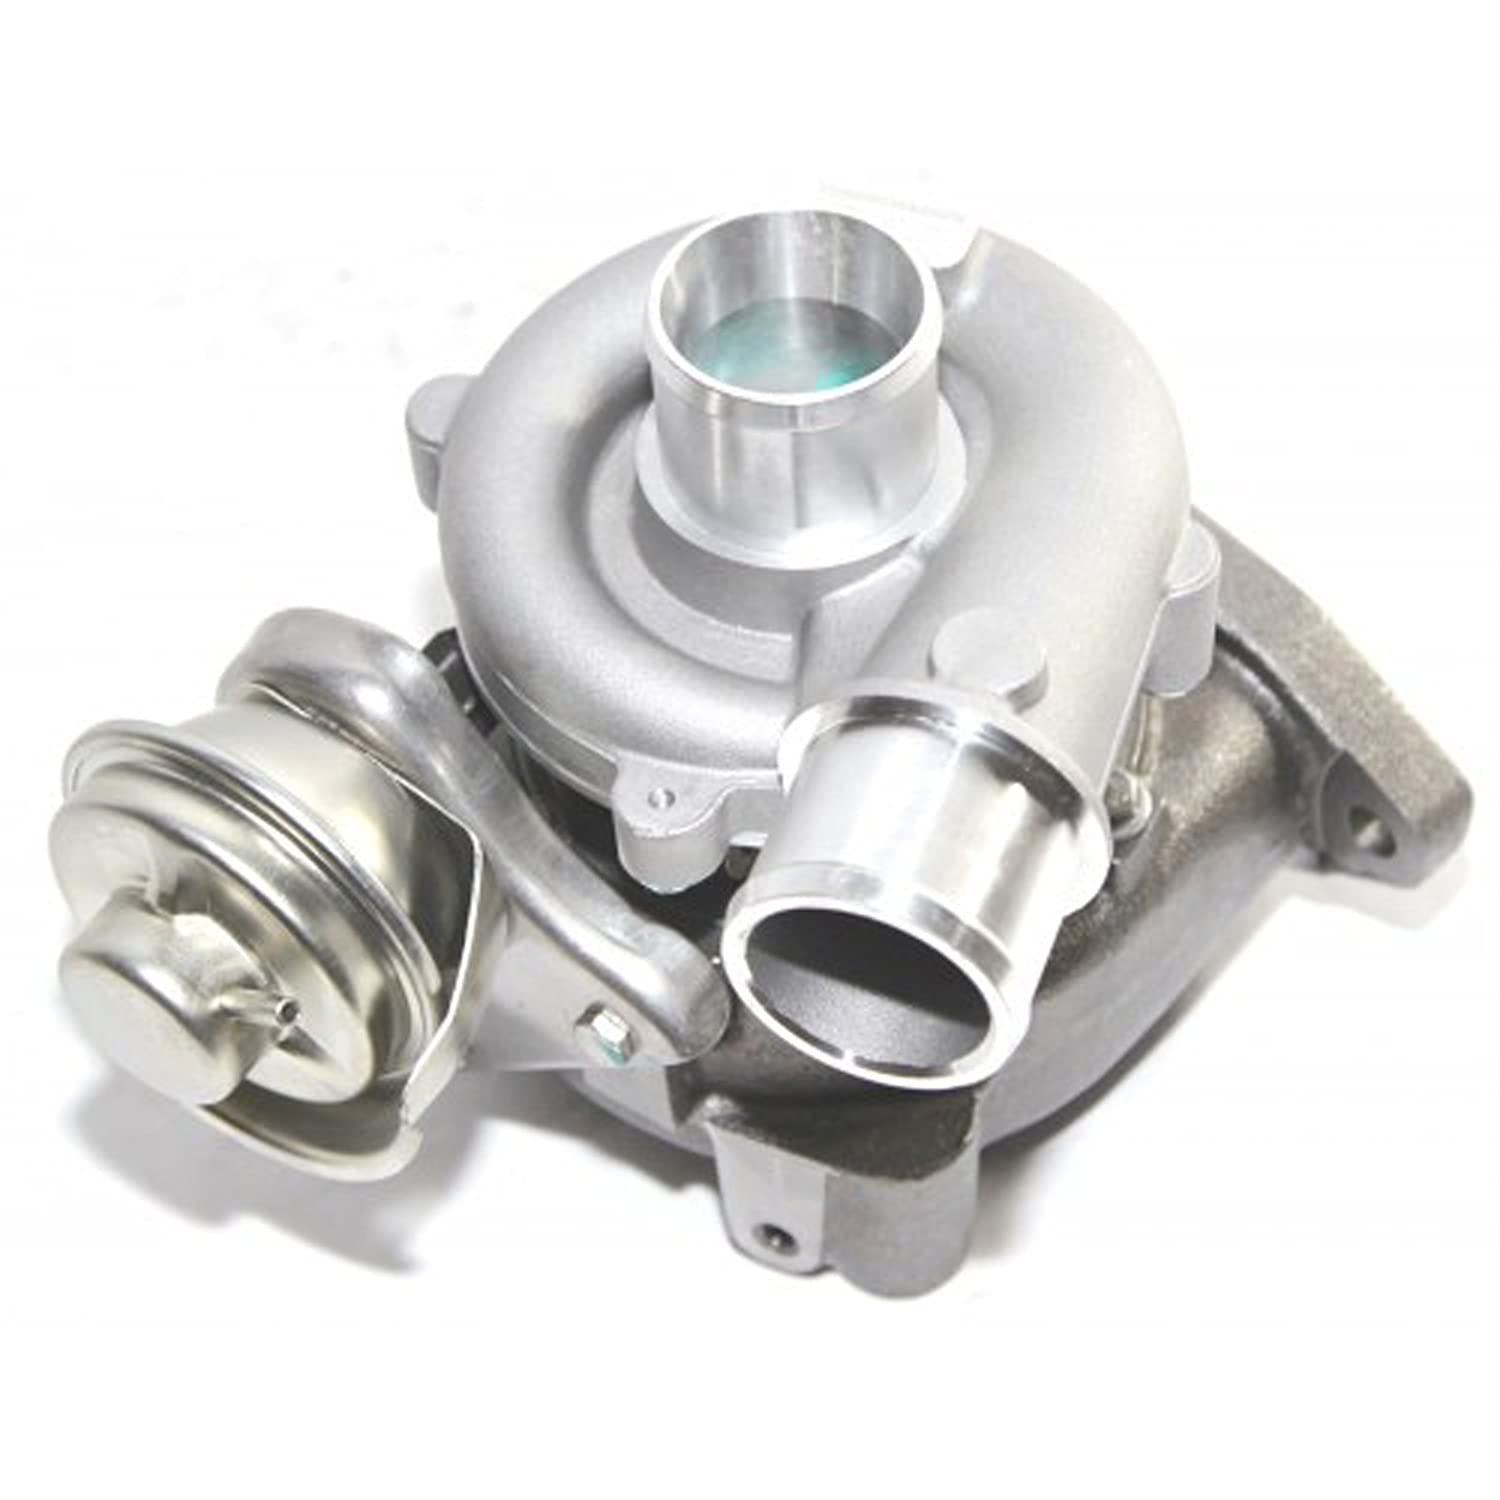 Amazon.com: Holdwell Turbocharger GT1749V Turbo Turbocharger 17201-27040 for Toyota Auris Avensis Picnic Previa RAV4 Estima 021Y 1CD-FTV 721164: Automotive